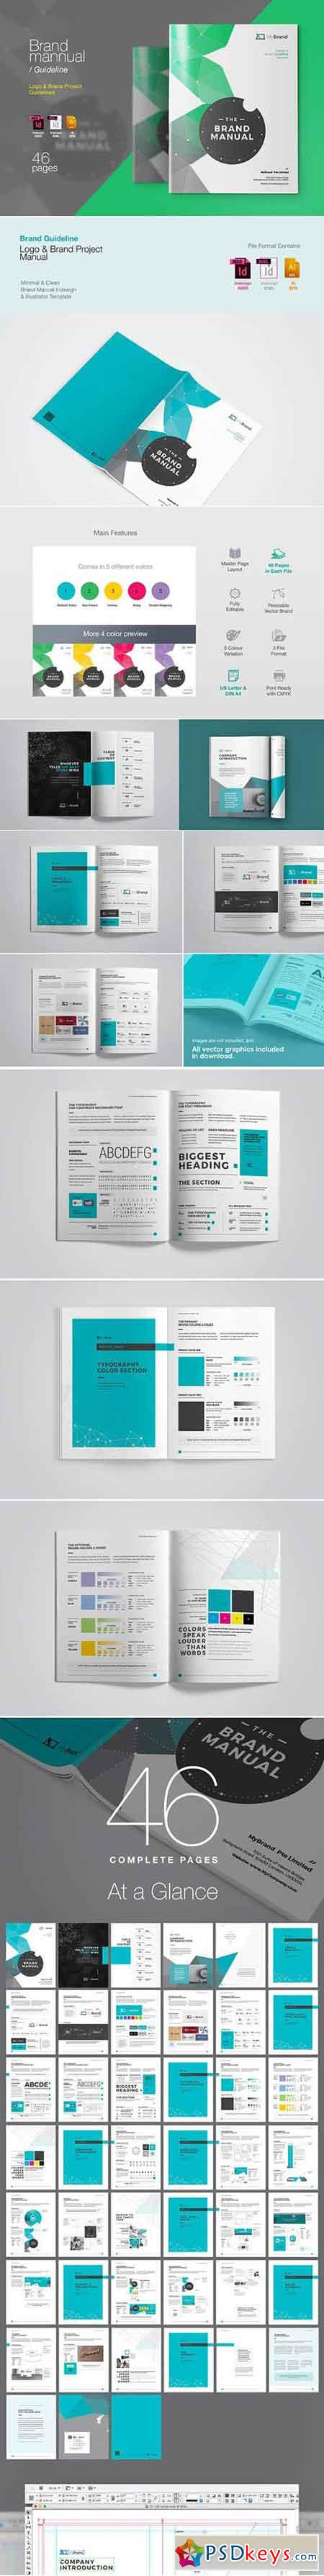 Brand Guideline Brochure 3370193